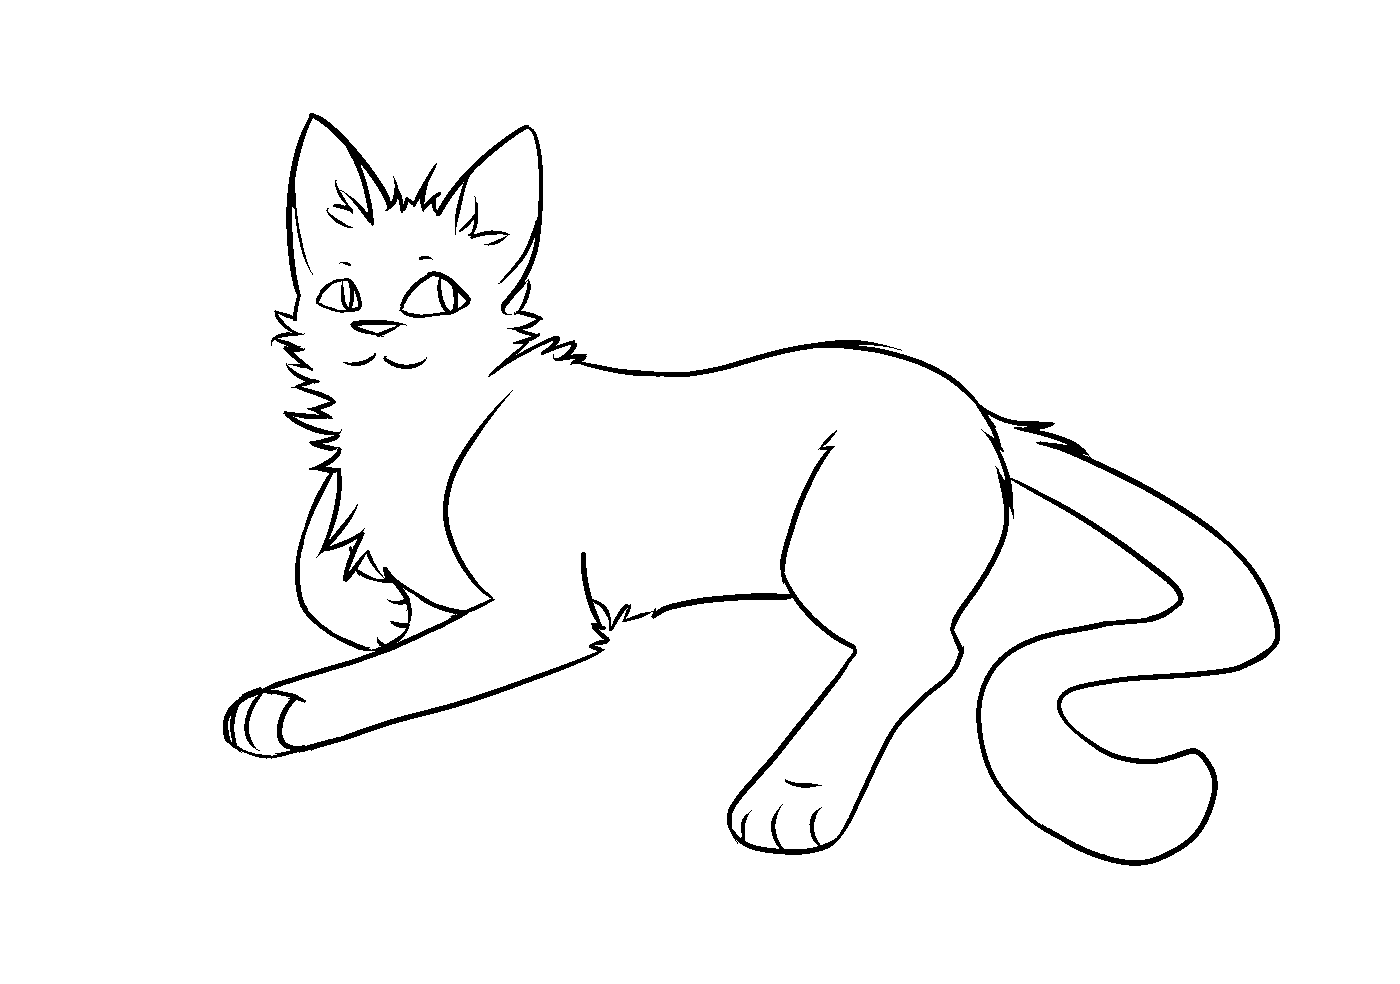 F2u thunderclan apprentice warrior cat lineart by codeflsh dcmgdwp.png